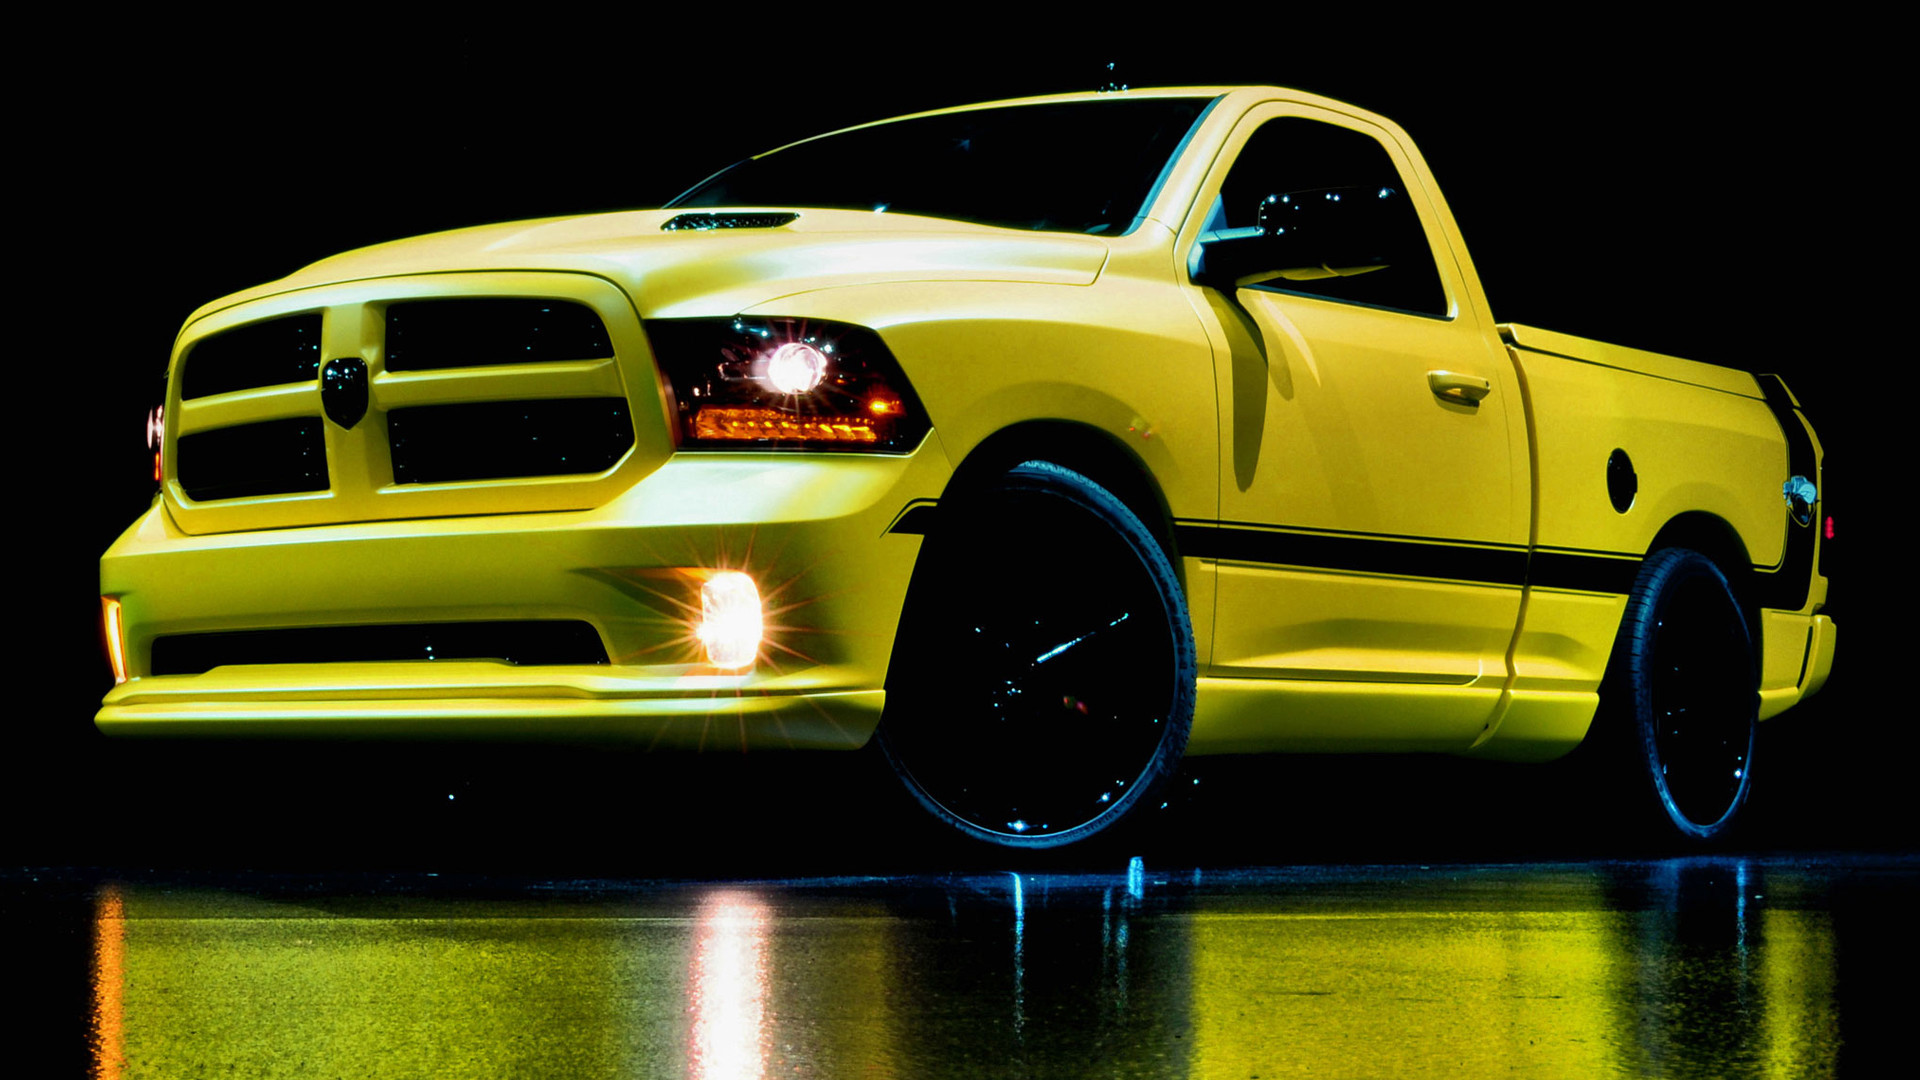 1920x1080 2014 Ram 1500 Rumble Bee Concept Black Background Cars Dodge Reflections  Trucks Vehicles Yellow ...